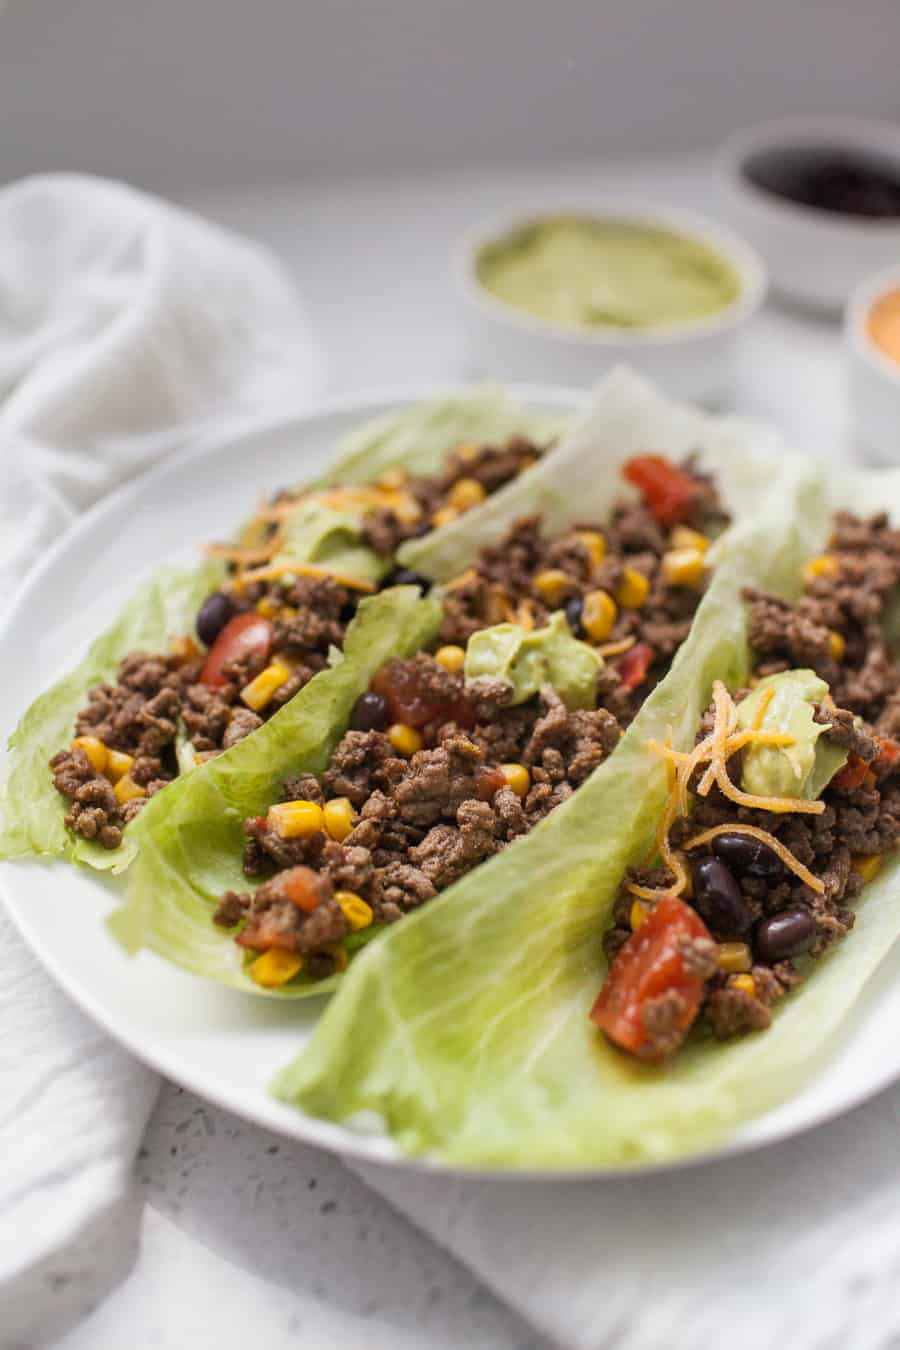 Looking for an easy summer dinner routine? These beef taco lettuce wraps are light, full of flavor and so quick to make, so you can spend less time inside and more time enjoying the season!